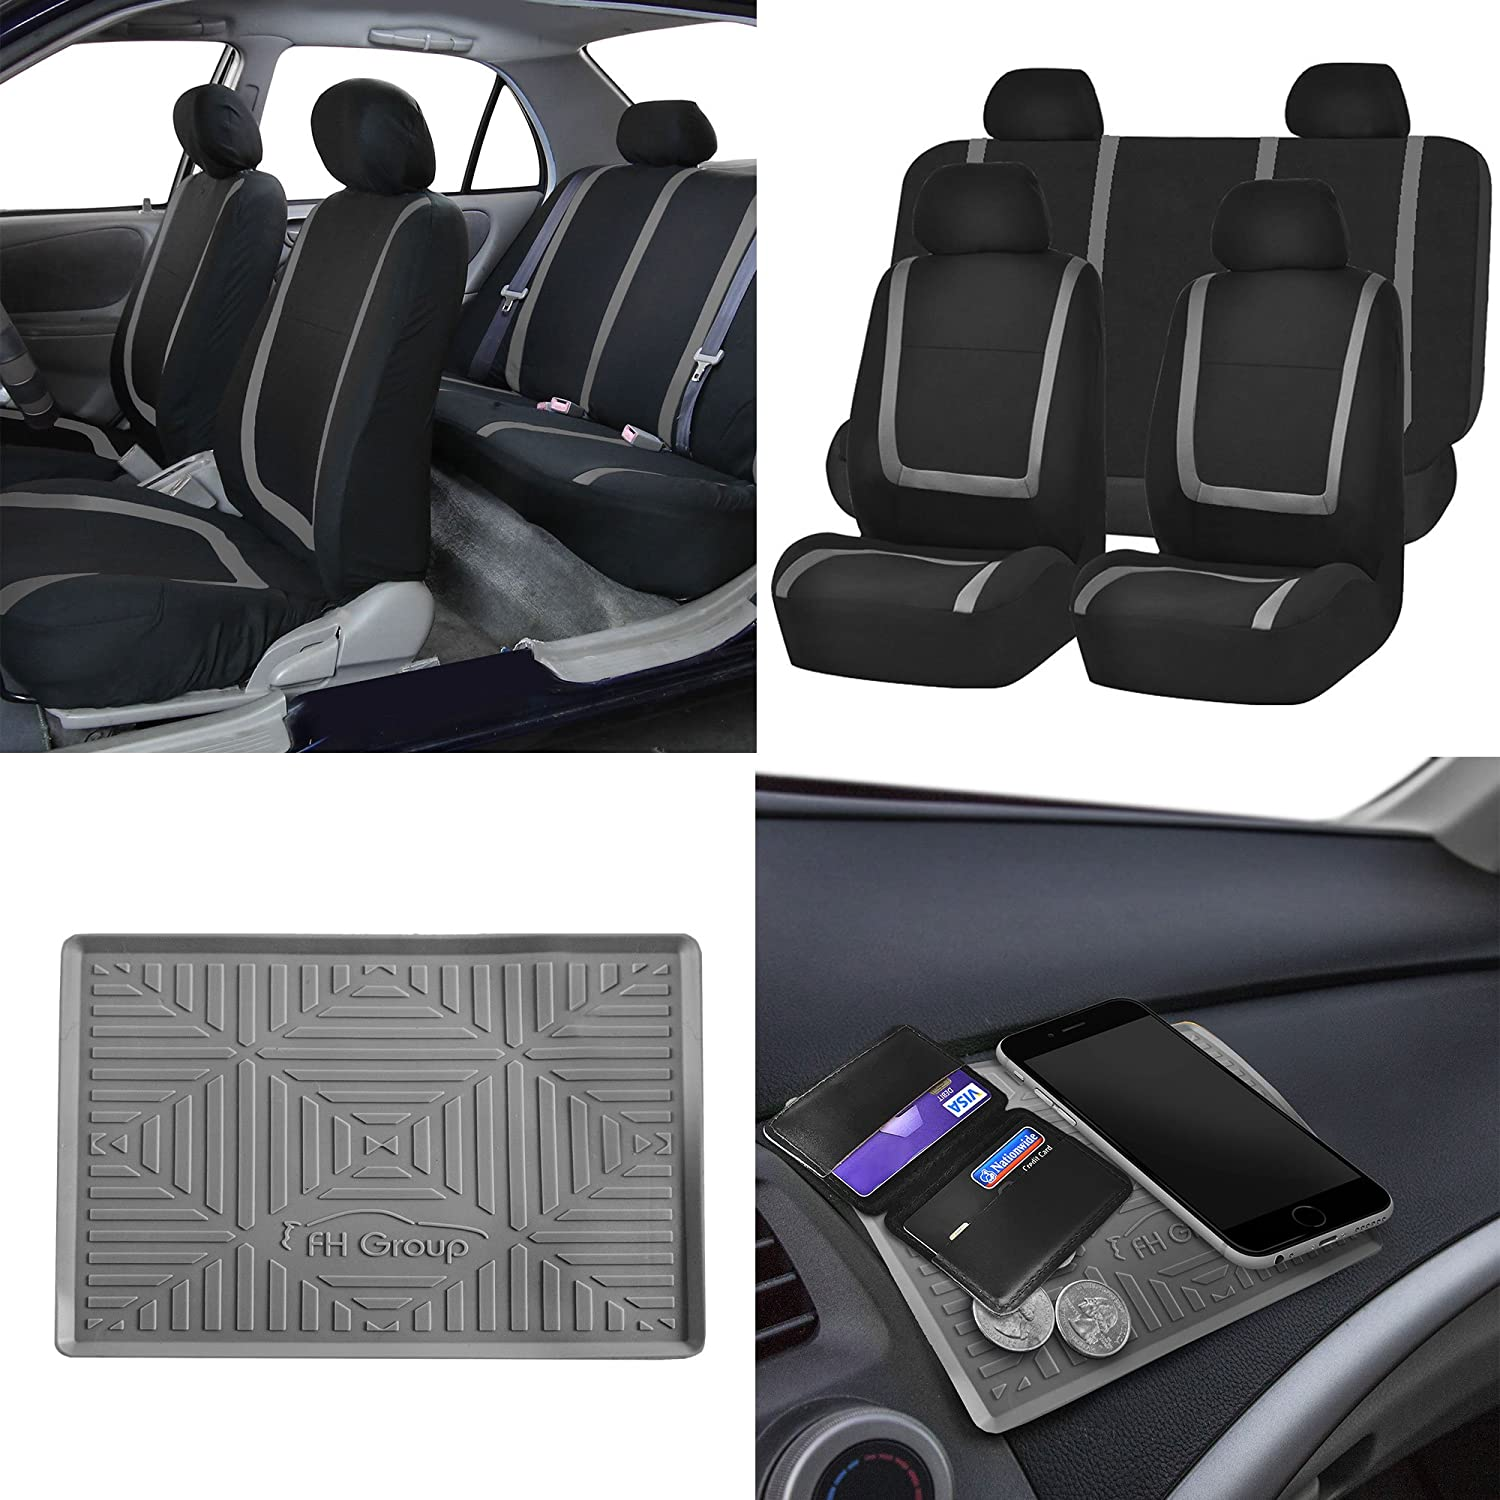 FH Group FB032114 Unique Flat Cloth Full Set Car Seat Covers w. Silicone Anti-Slip Dash Mat, Gray/Black Color- Fit Most Car, Truck, SUV, or Van